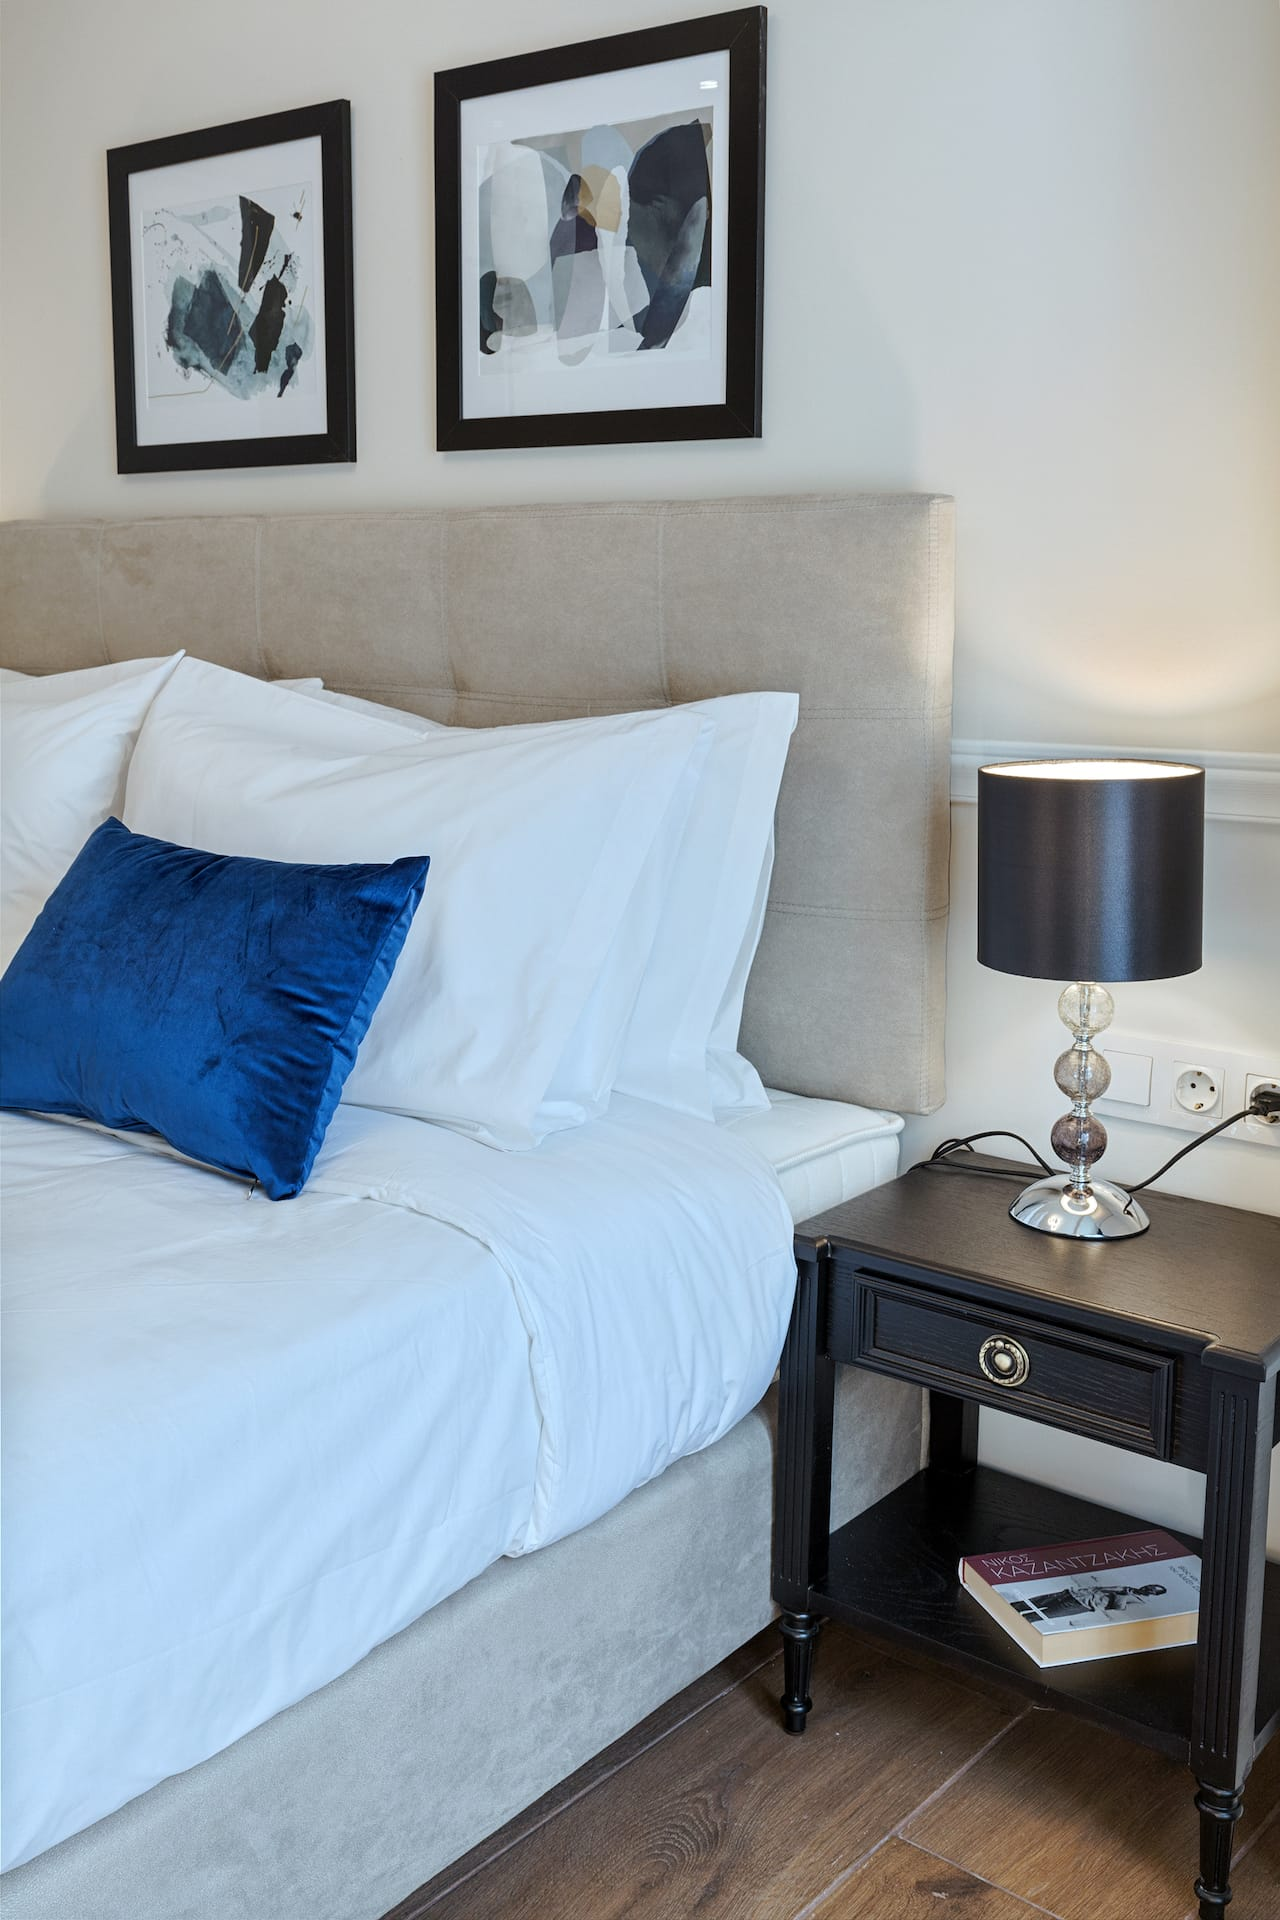 The Deluxe Room Hot Tub bedside table with lamp. Luxury double rooms in the center of Athens, Greece